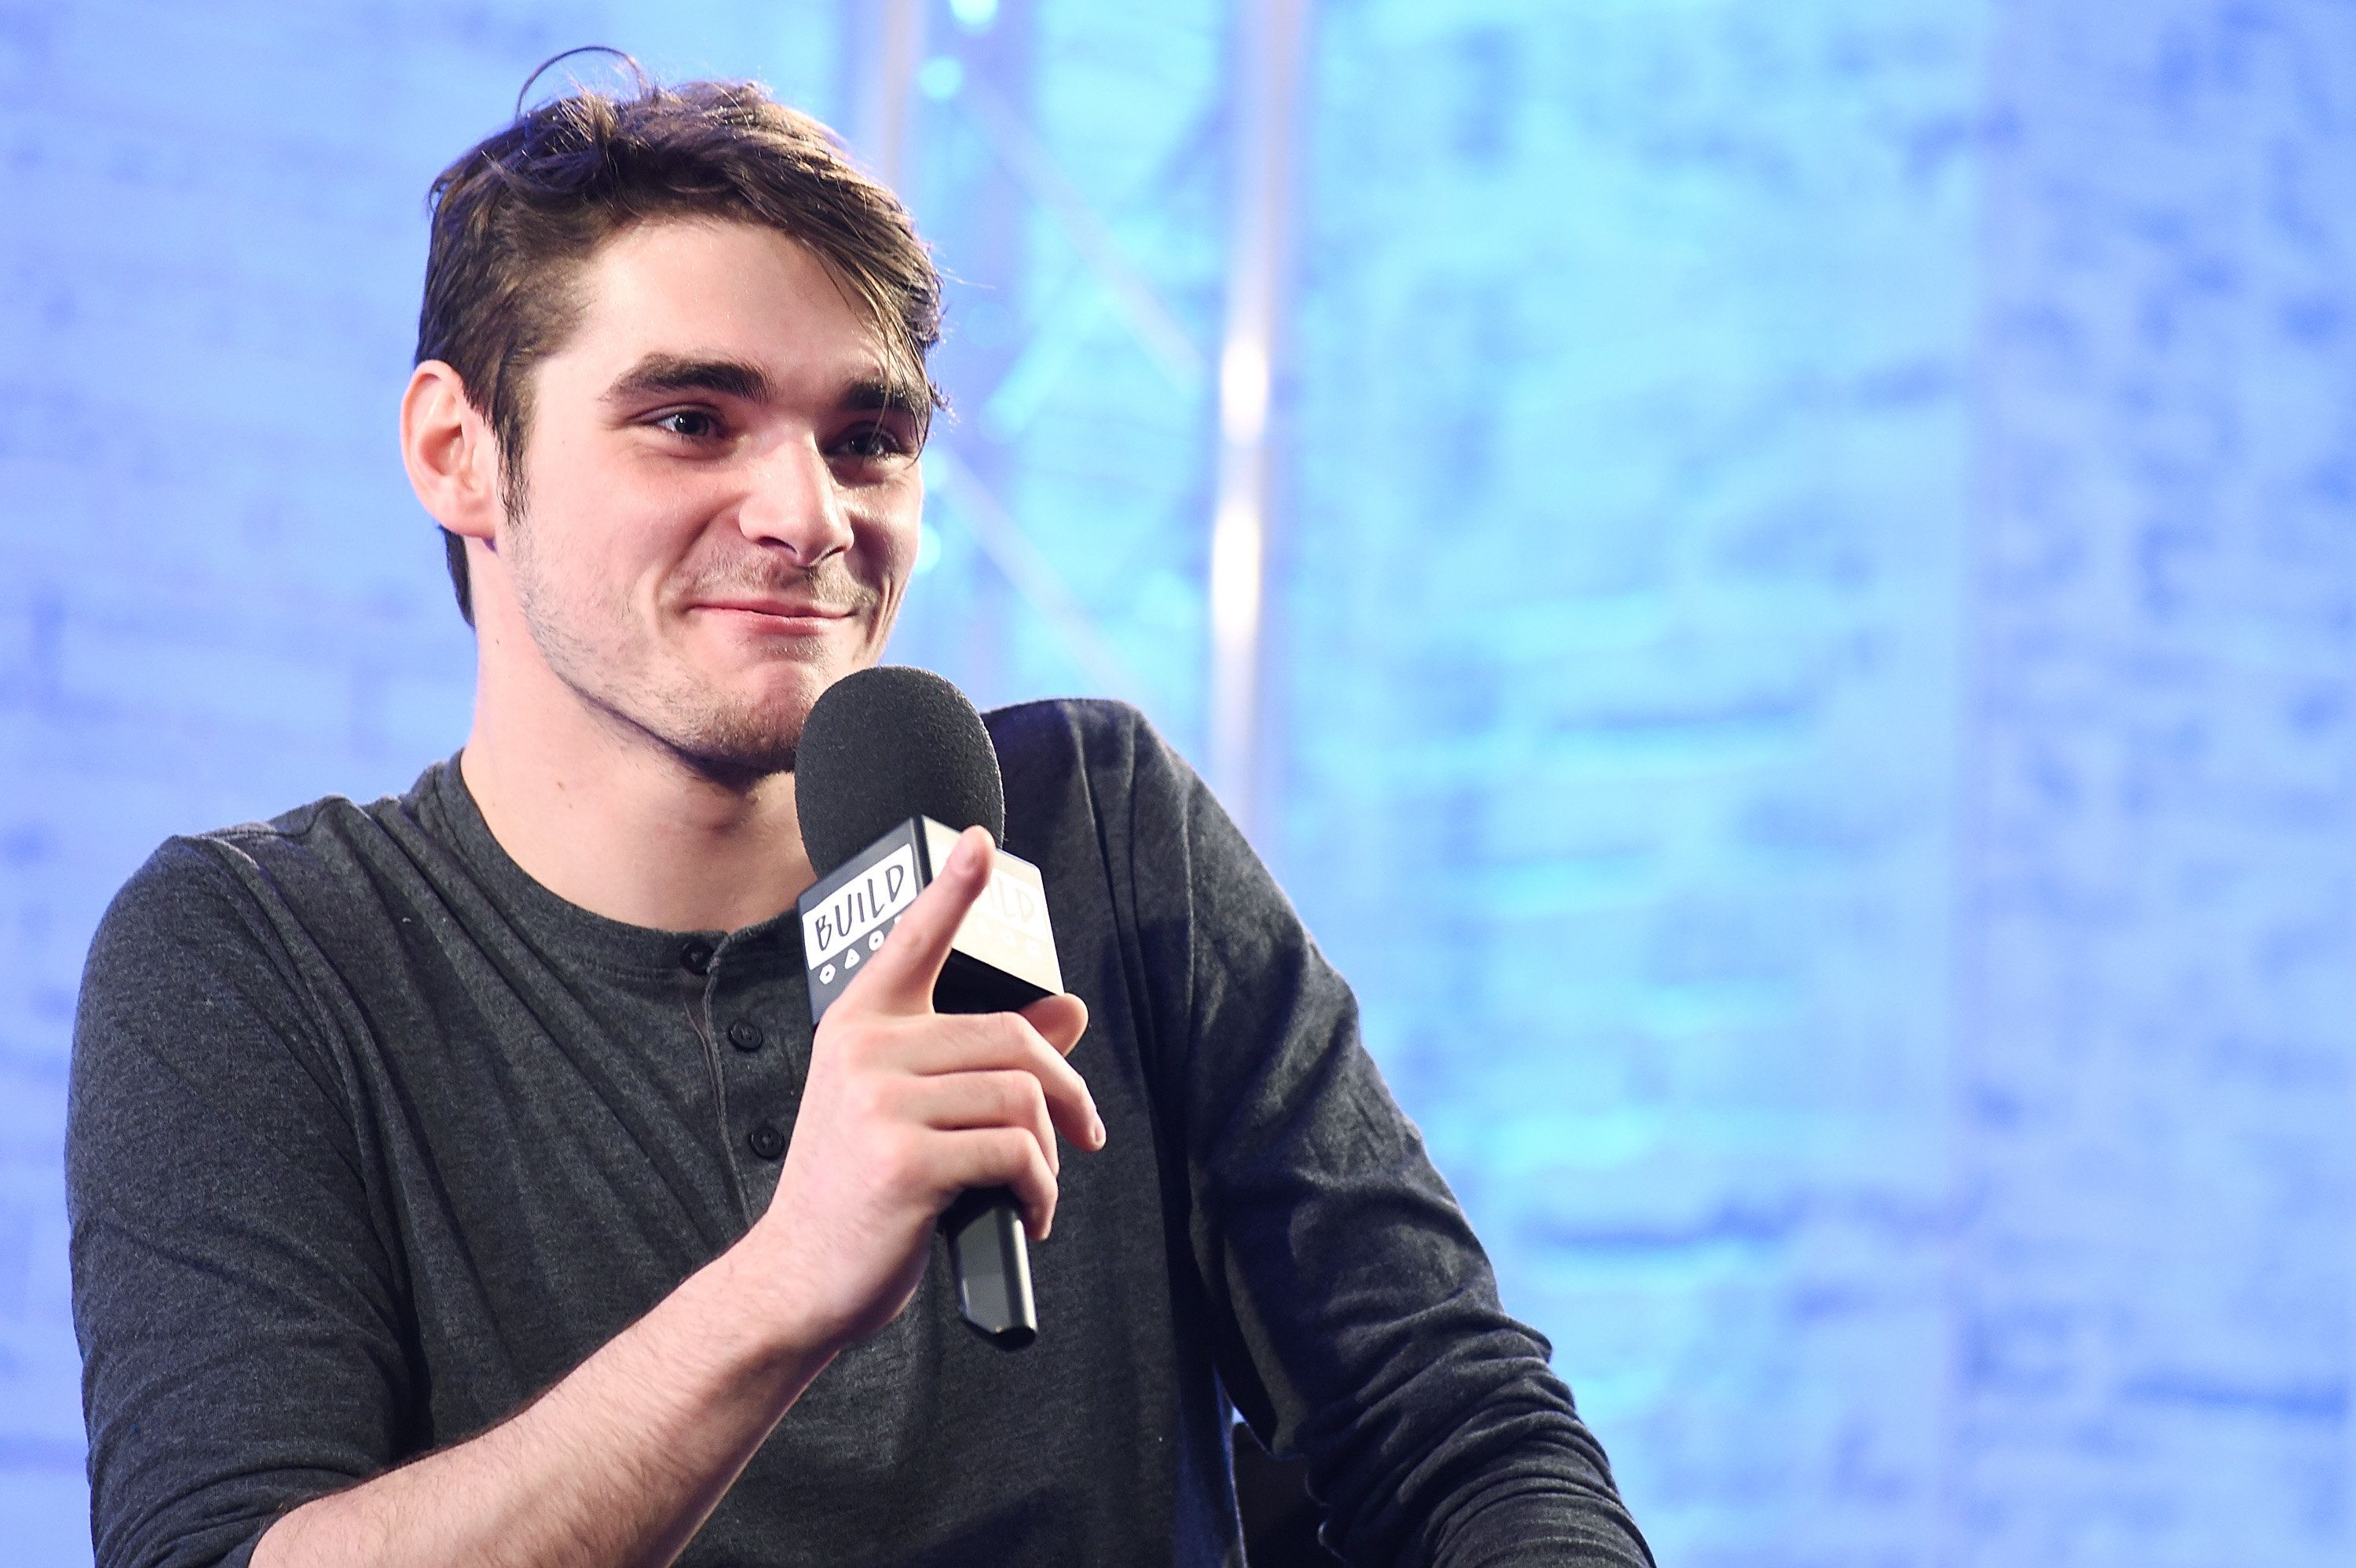 RJ Mitte Is The Latest Star To Sign Up For Channel 4's 'Bear Grylls' The